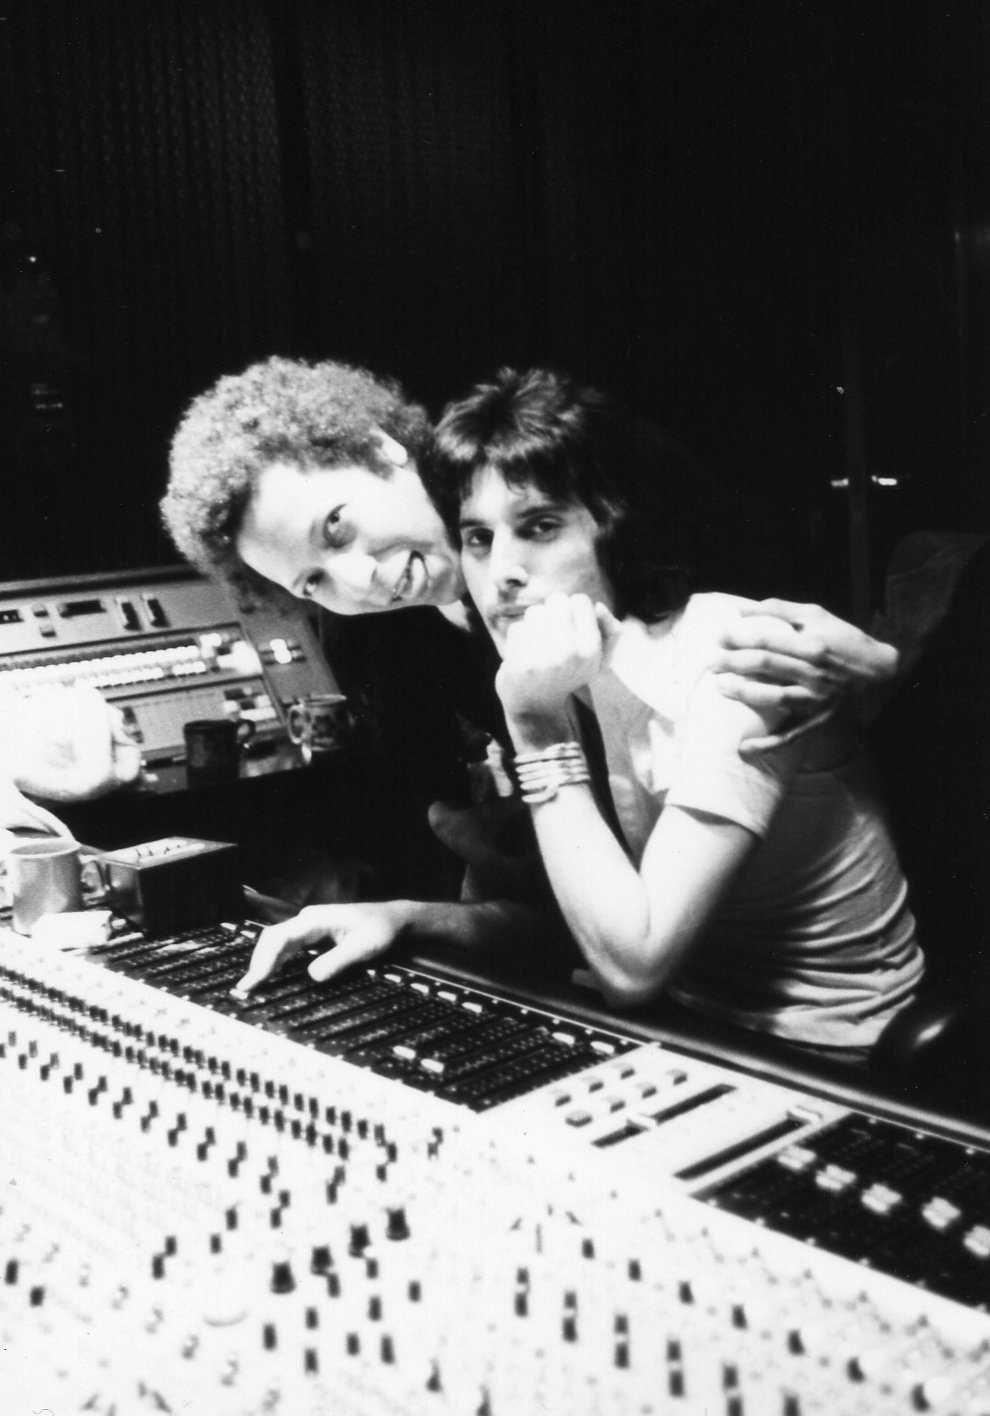 Peter Straker and Freddie Mercury in a music studio